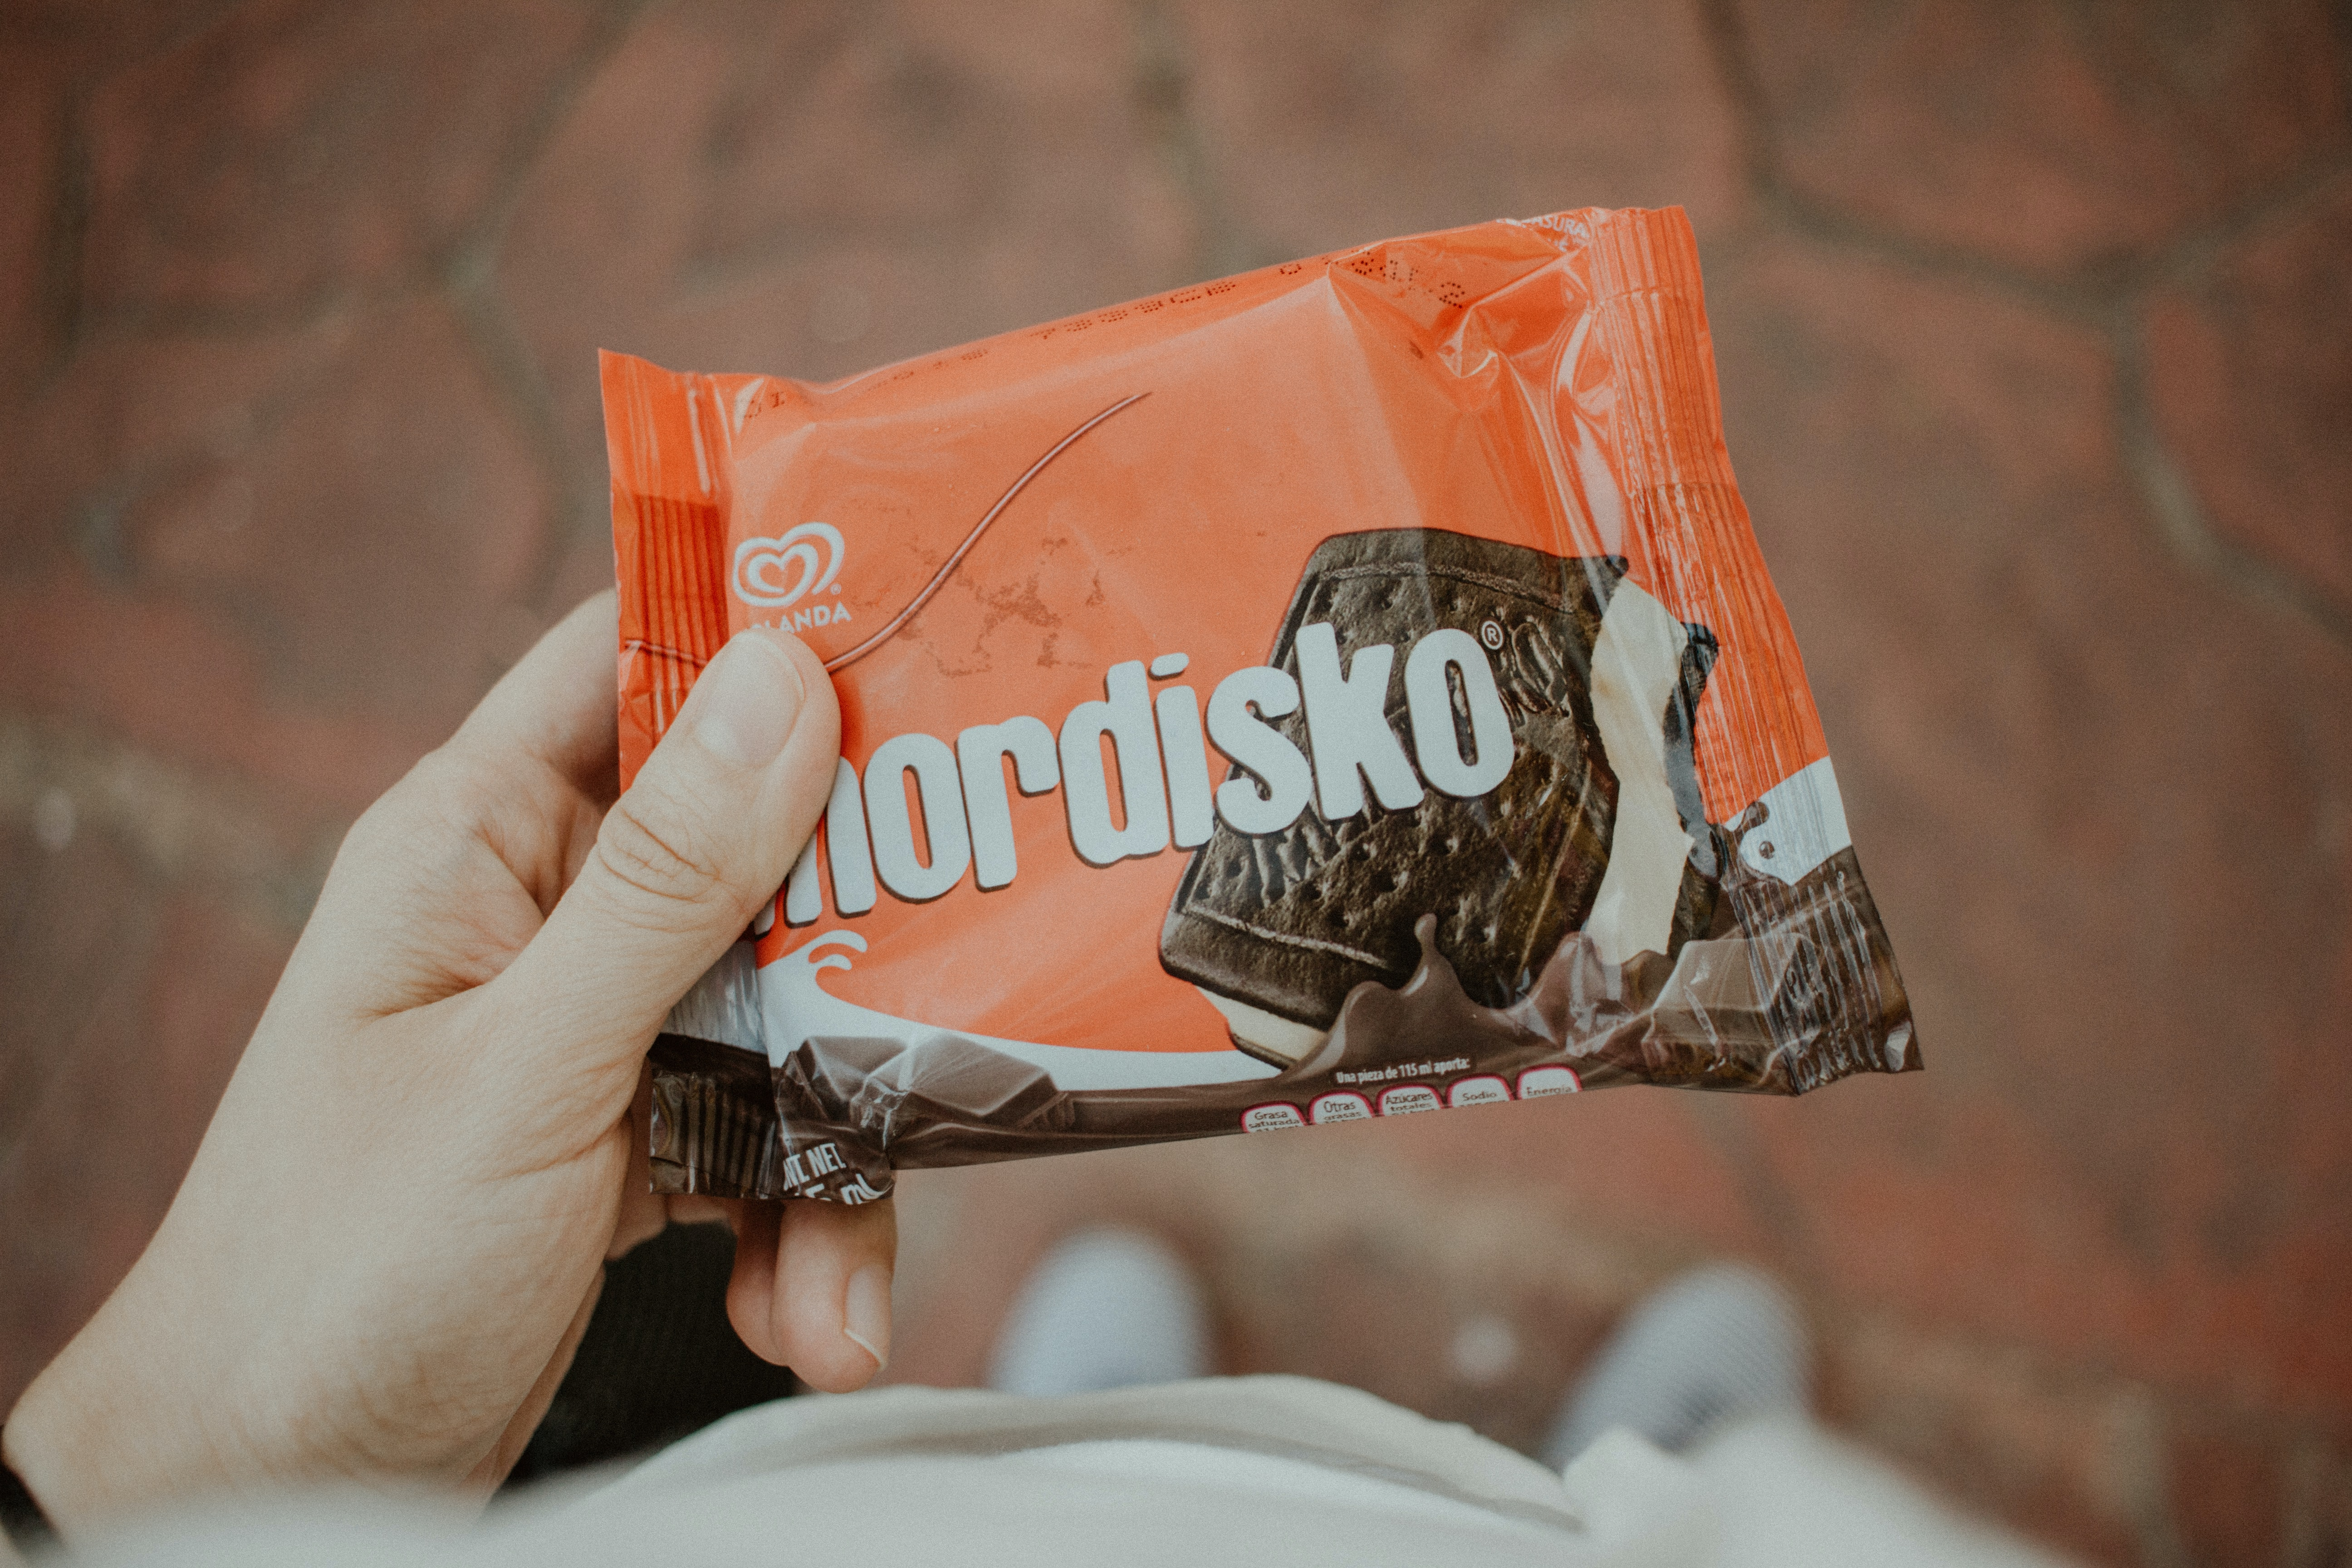 person holding Nordisko biscuit pack